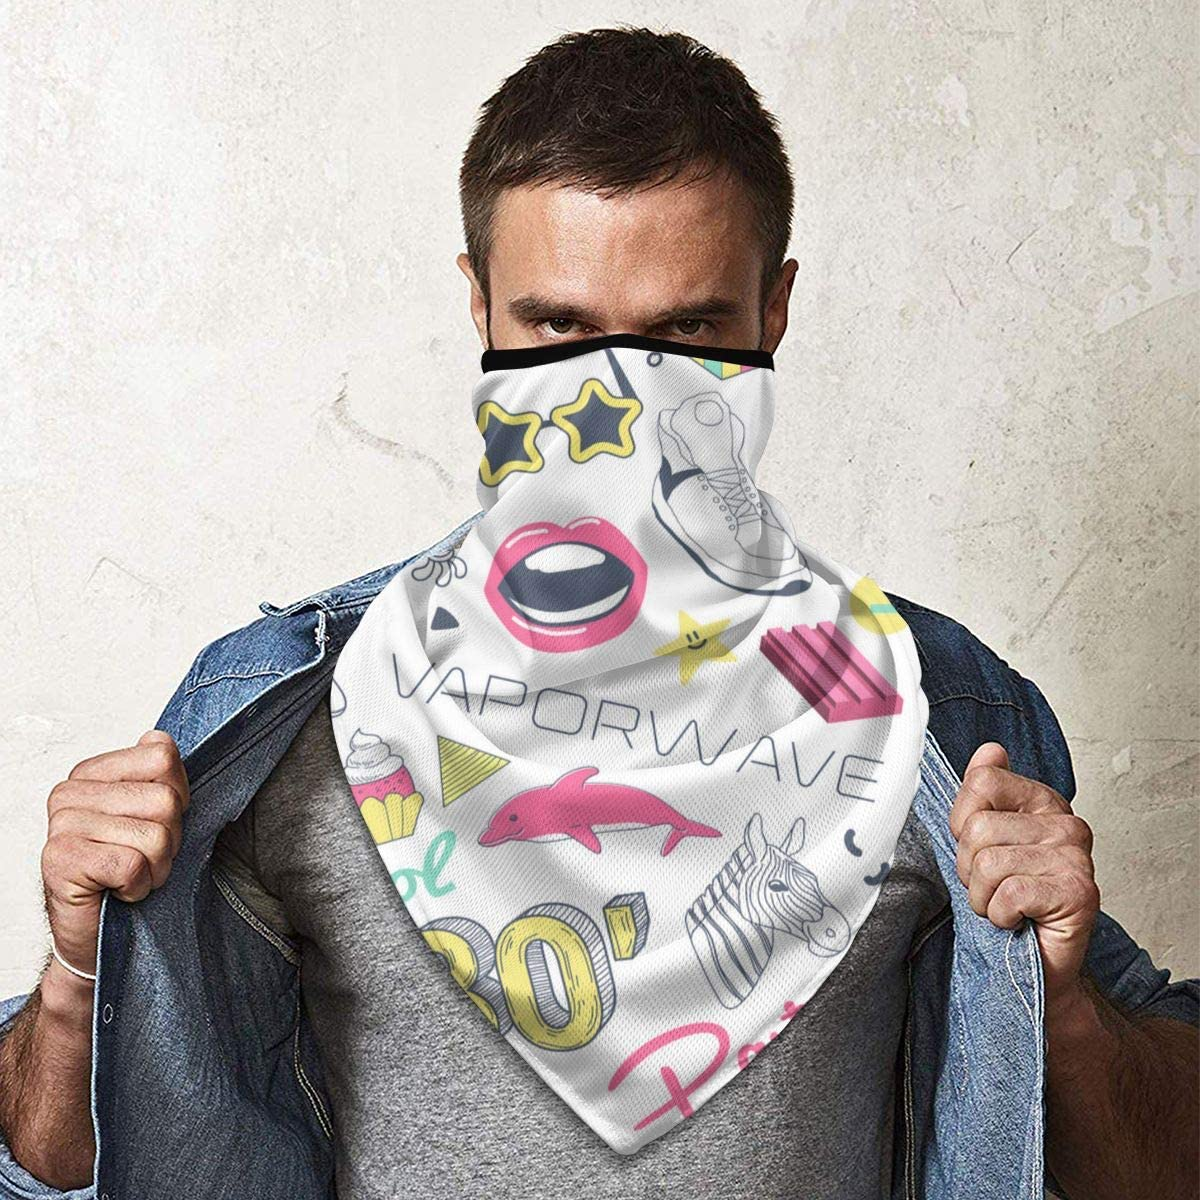 Wind-Resistant Face Mask/& Neck Gaiter,Balaclava Ski Masks,Breathable Tactical Hood,Windproof Face Warmer for Running,Motorcycling,Hiking-Fashion Hand Drawn Doodle with Skateboard